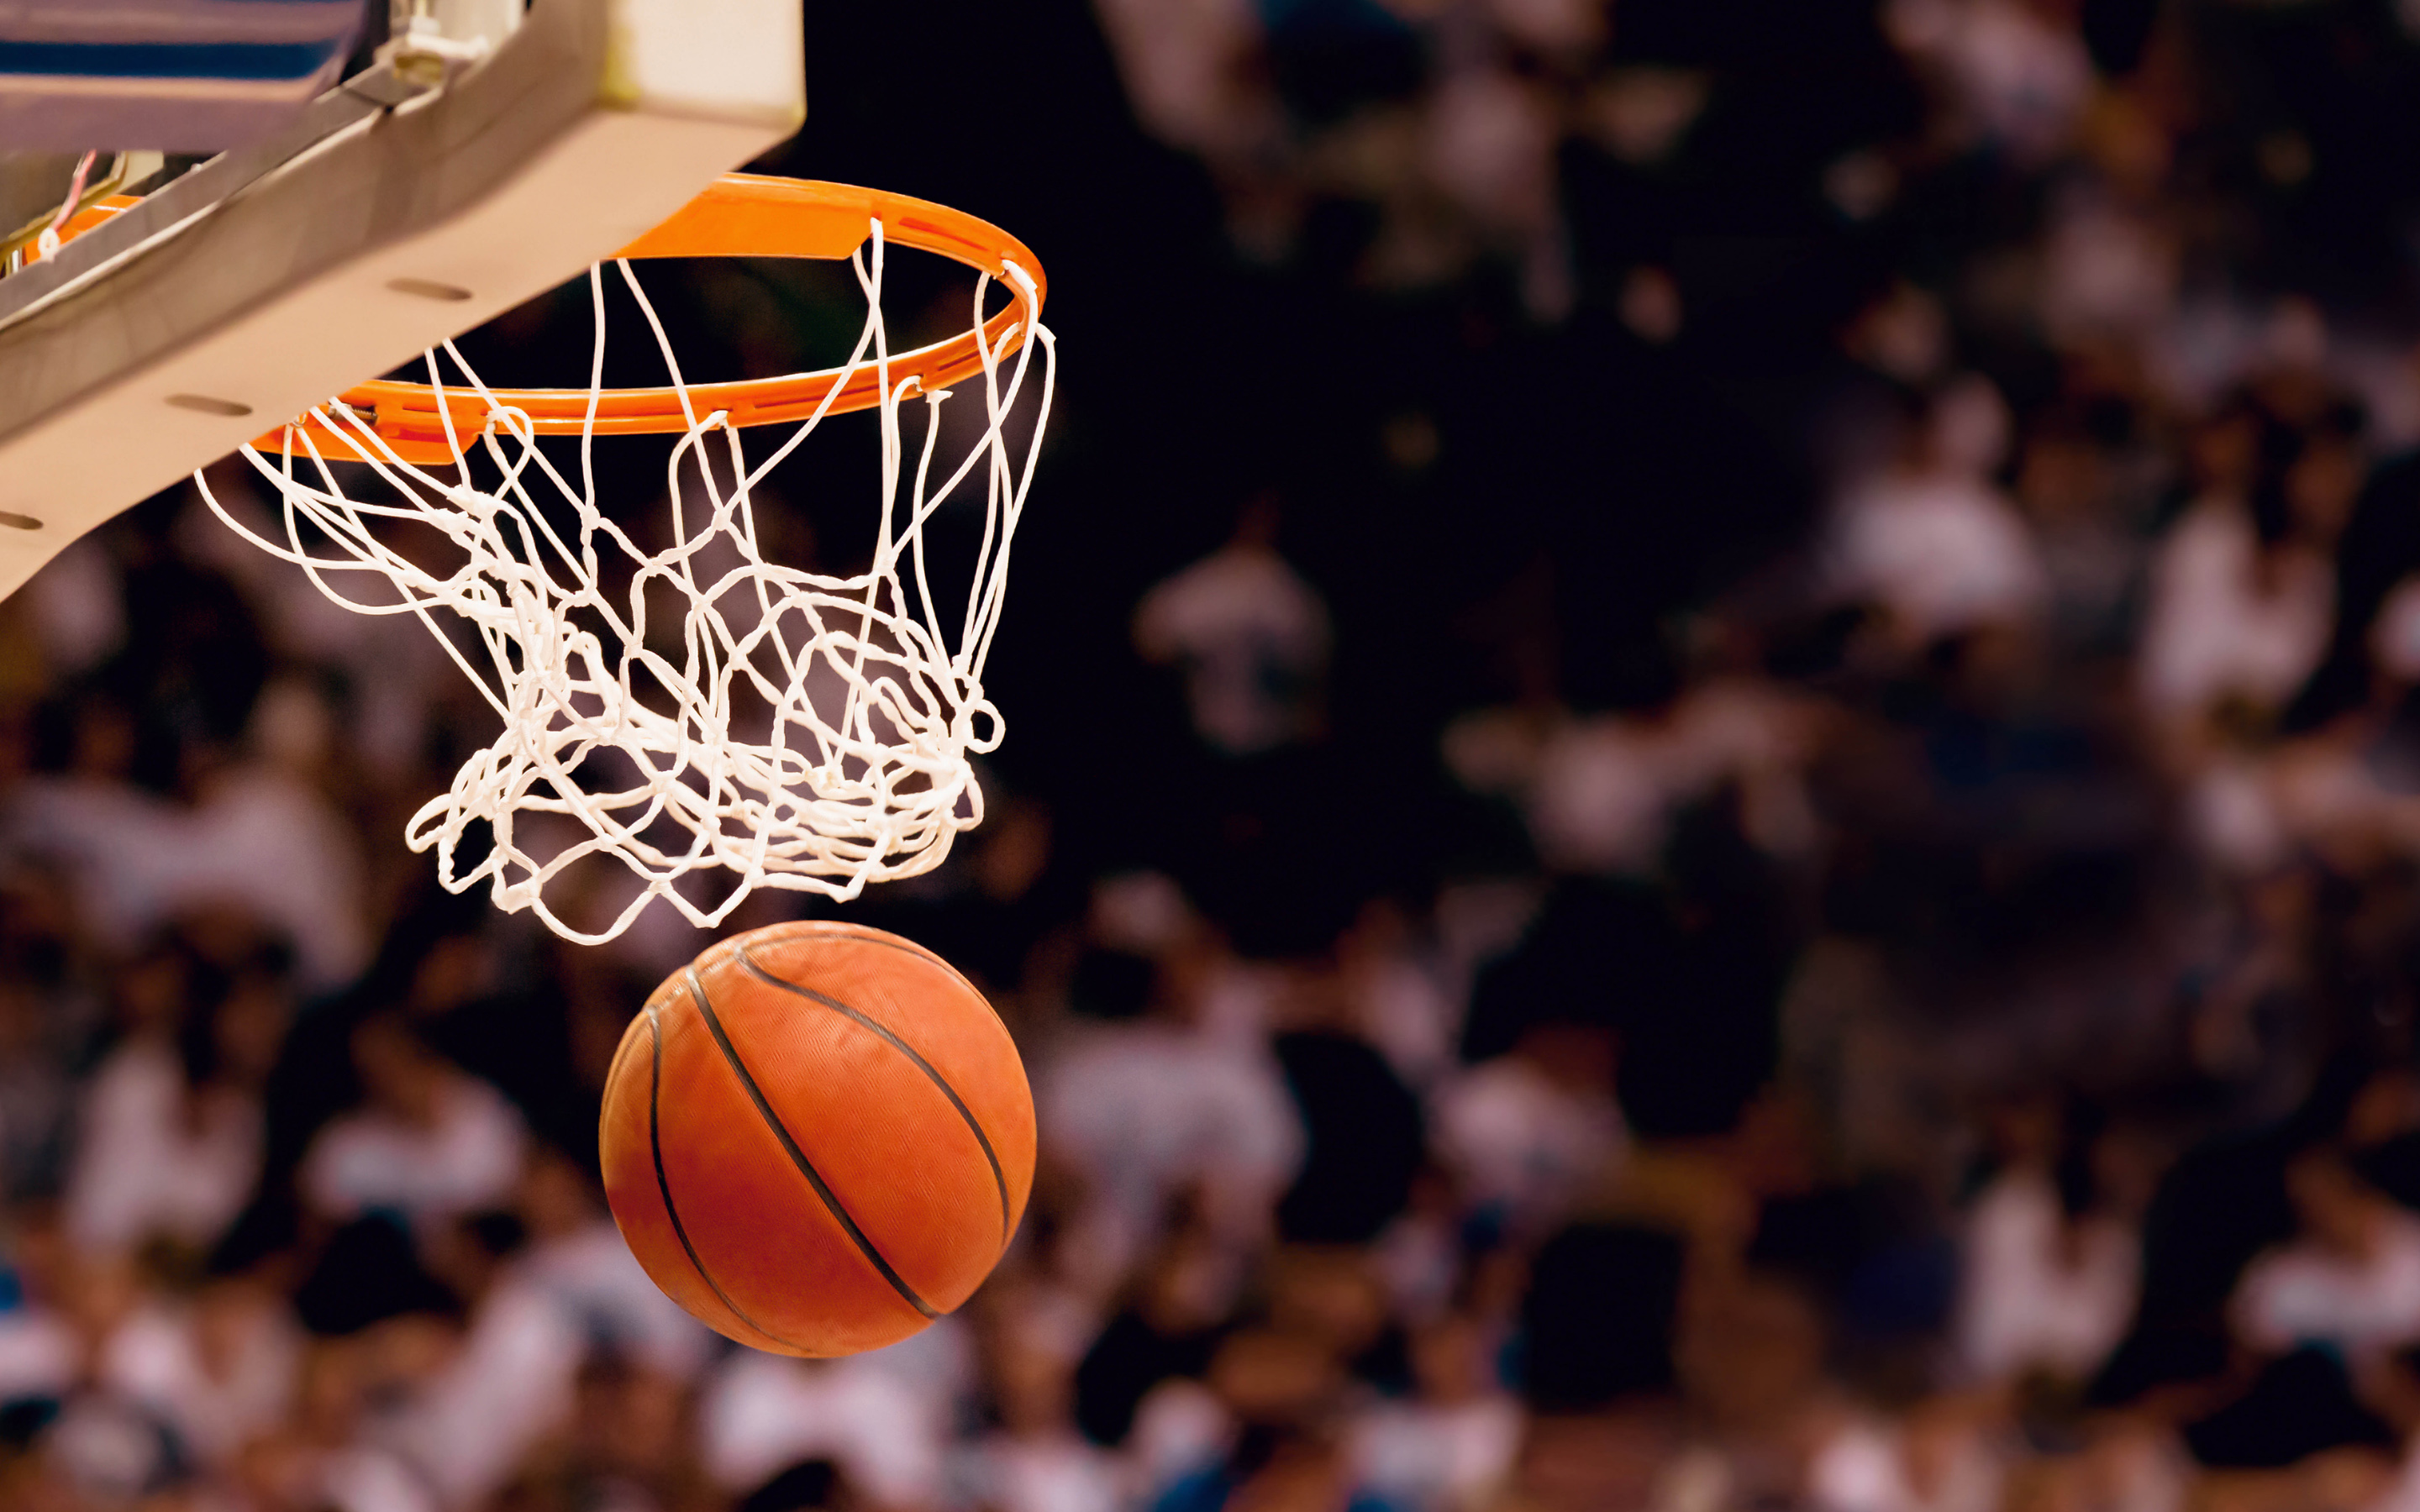 basketball widescreen wallpaper background hd 61932